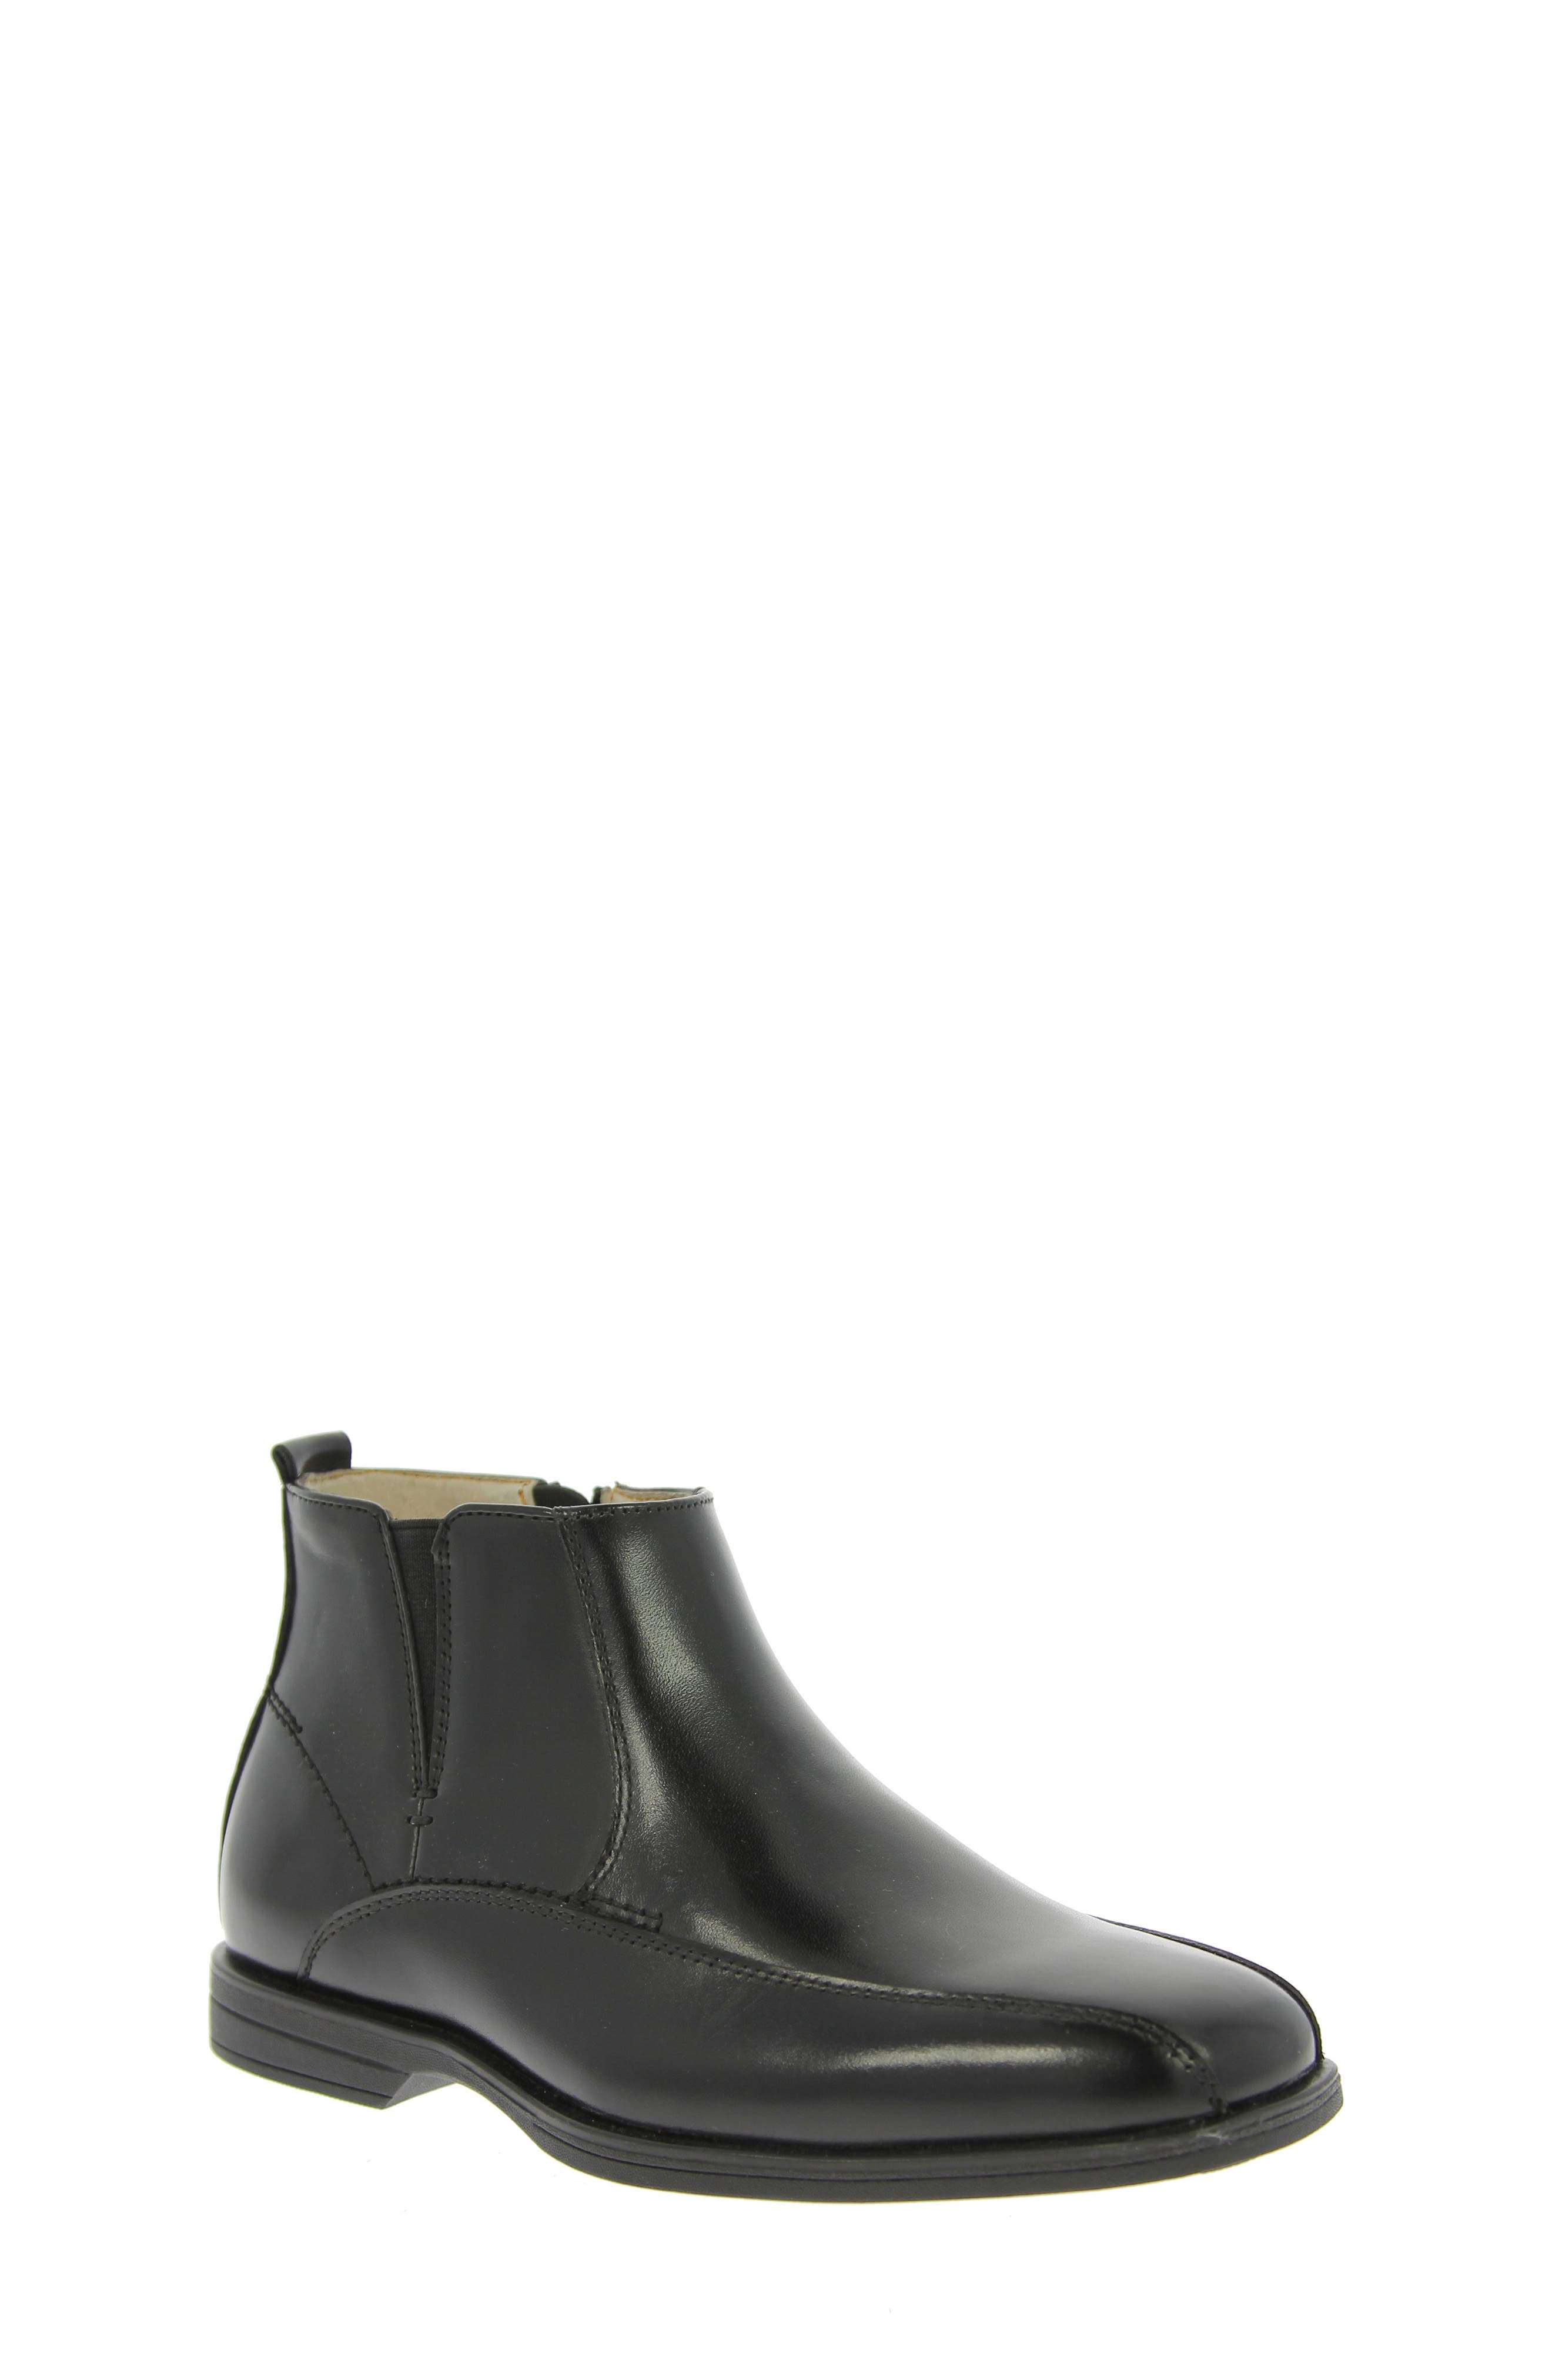 Reveal Chelsea Boot,                             Alternate thumbnail 11, color,                             BLACK